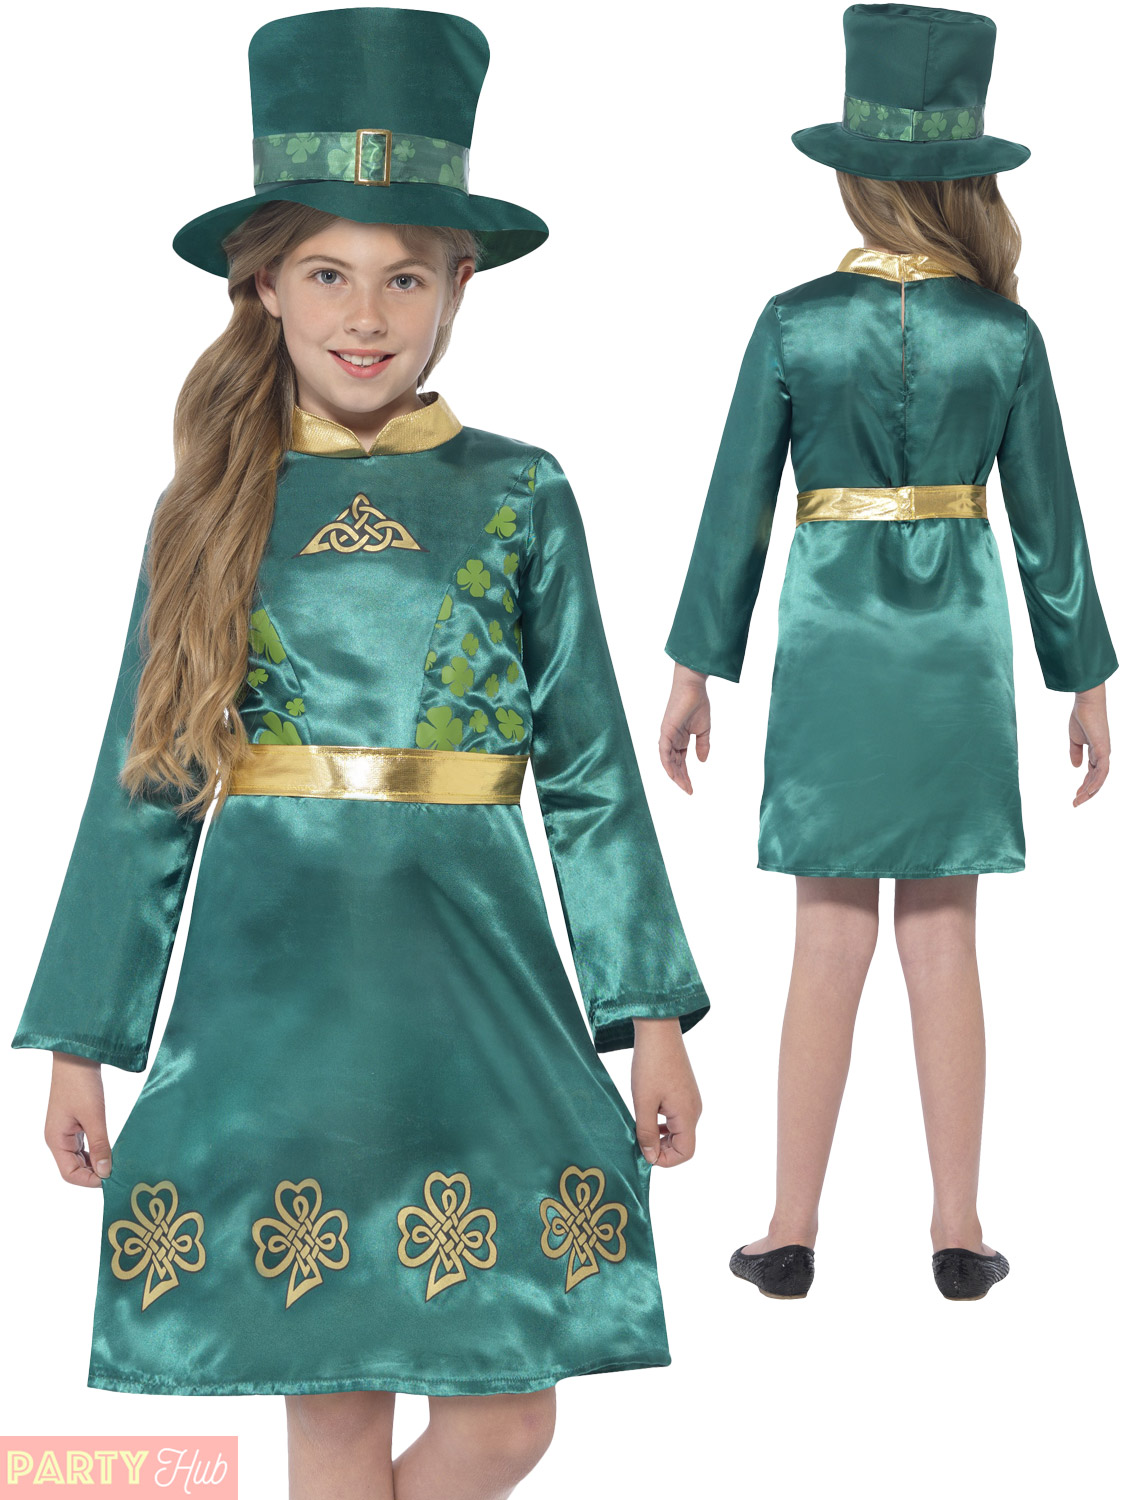 Fancy Fancy Dress Party Costumes Pictures - All Wedding Dresses ...